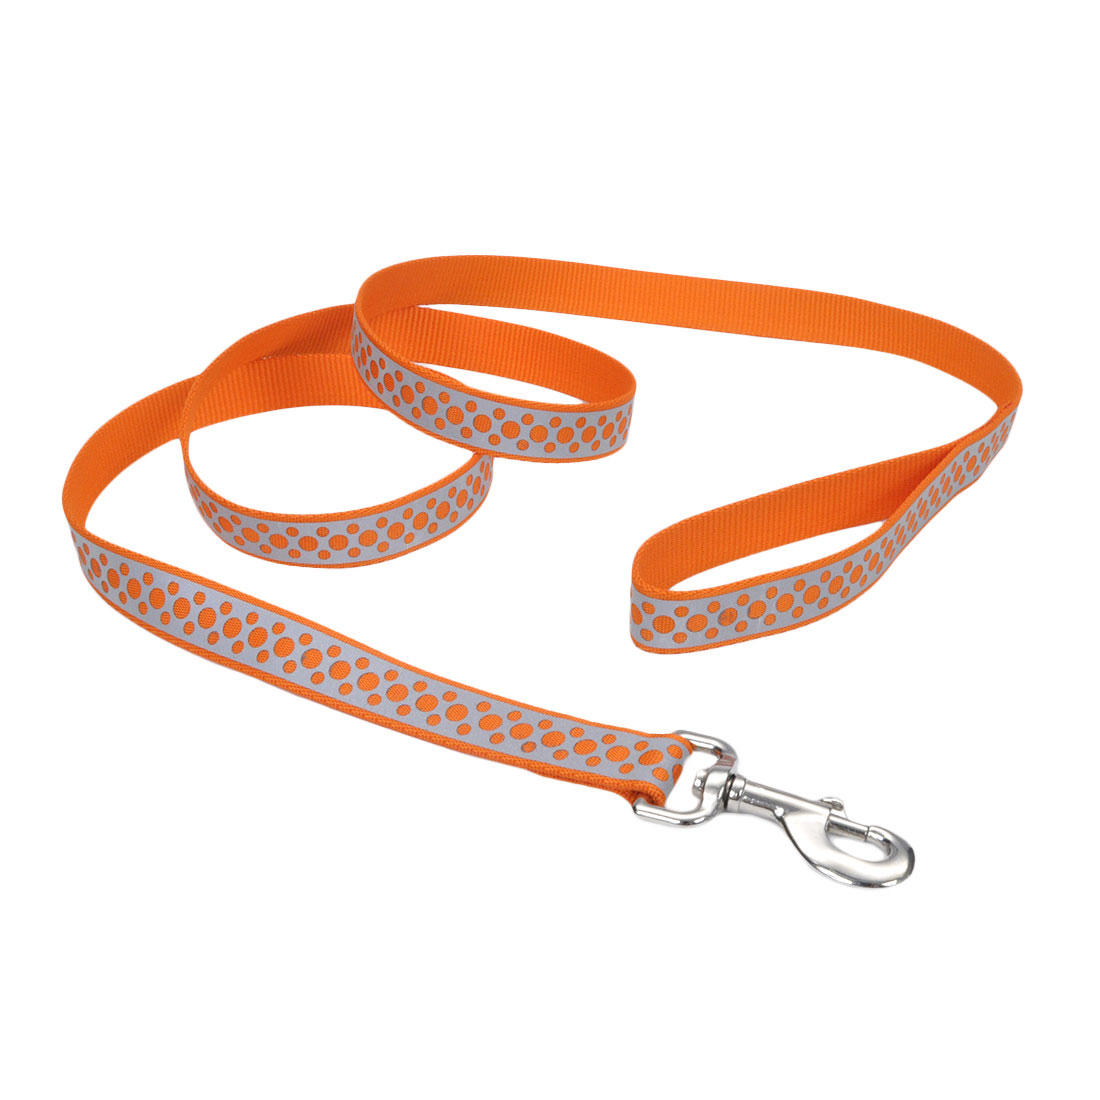 Lazer Brite Reflective Open-Design Dog Leash, Orange Abstract Rings, 1-inx6-inx6-in